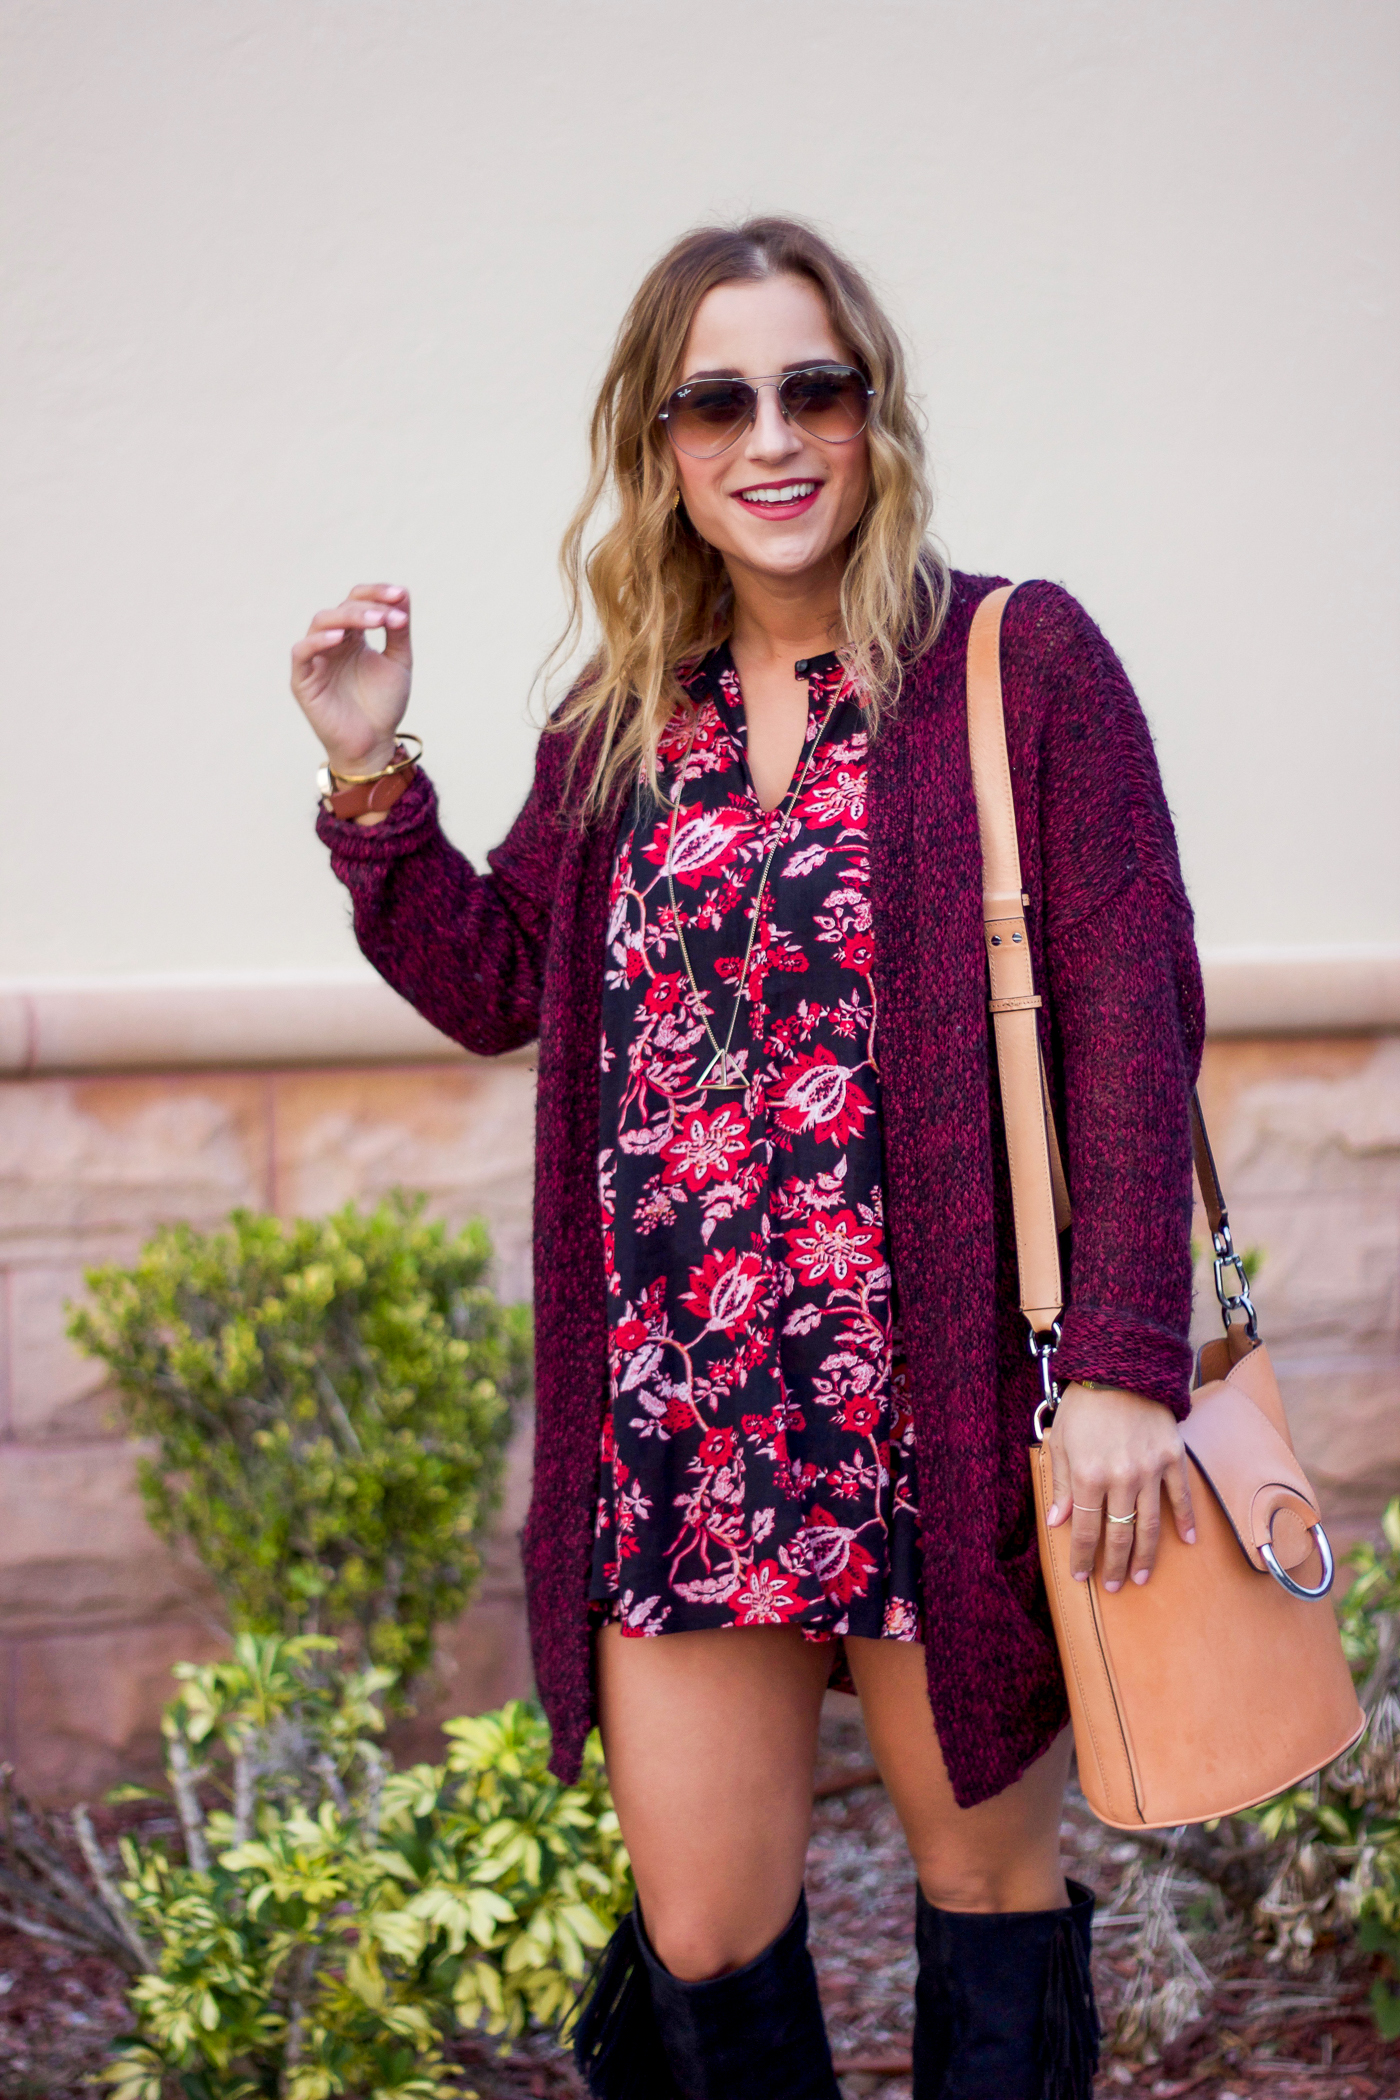 Canadian fashion blogger, Jackie of Something About That, is wearing a dark floral dress with a cardigan from Aritzia